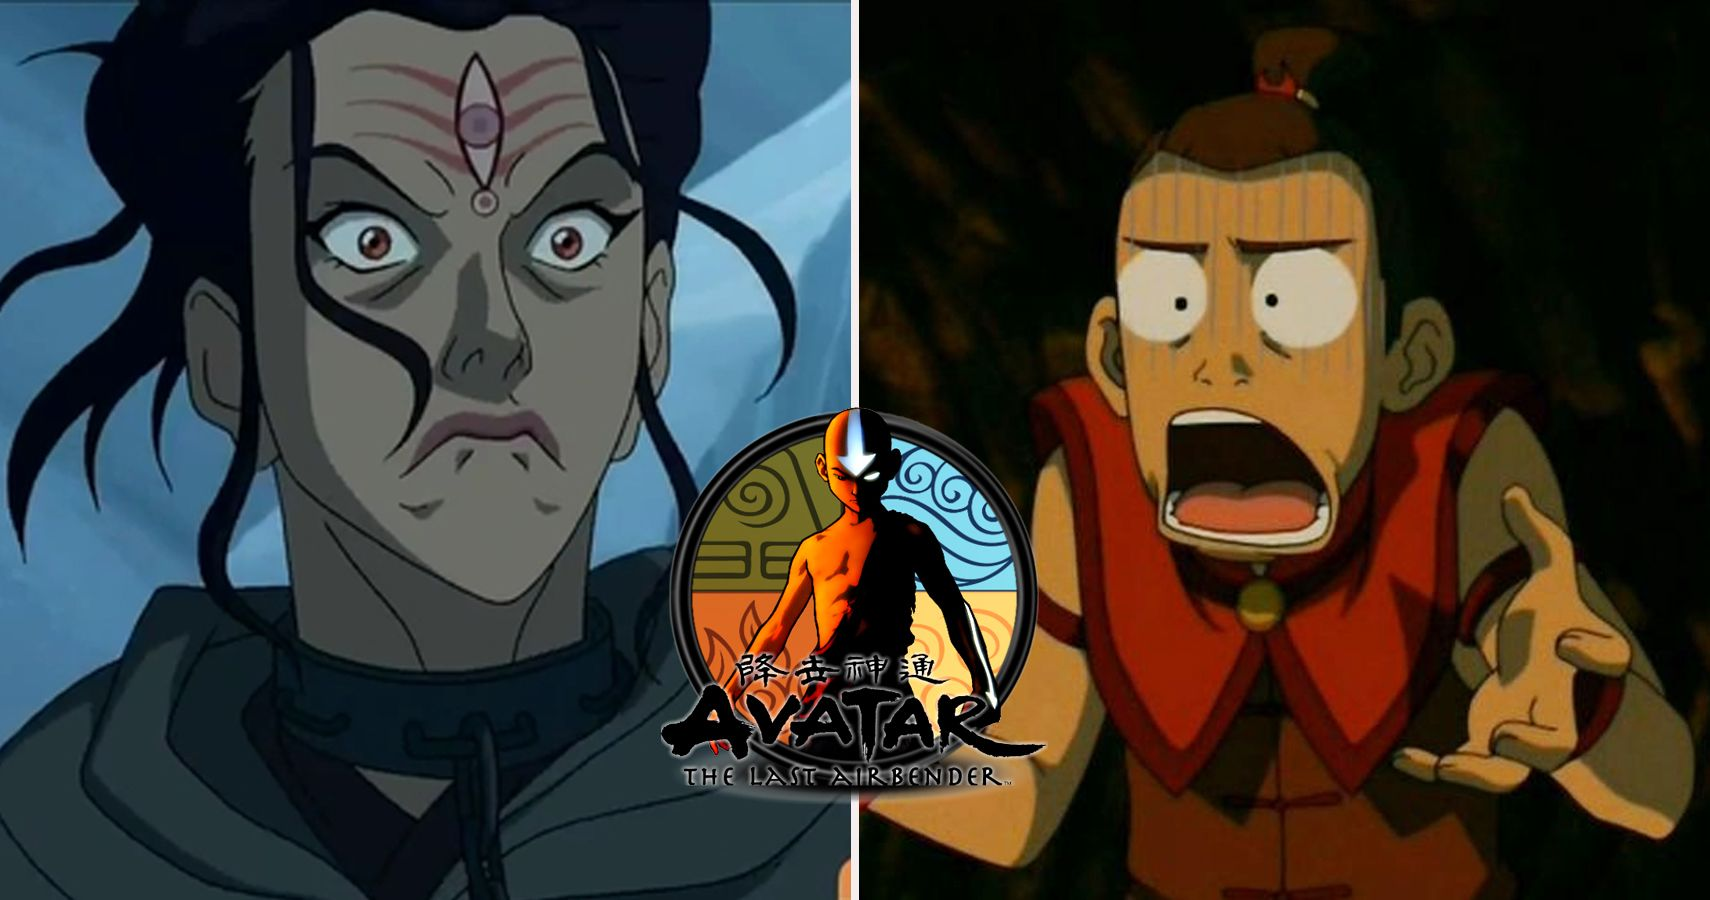 Mind Blowing Mistakes You Never Noticed In Avatar The Last Airbender